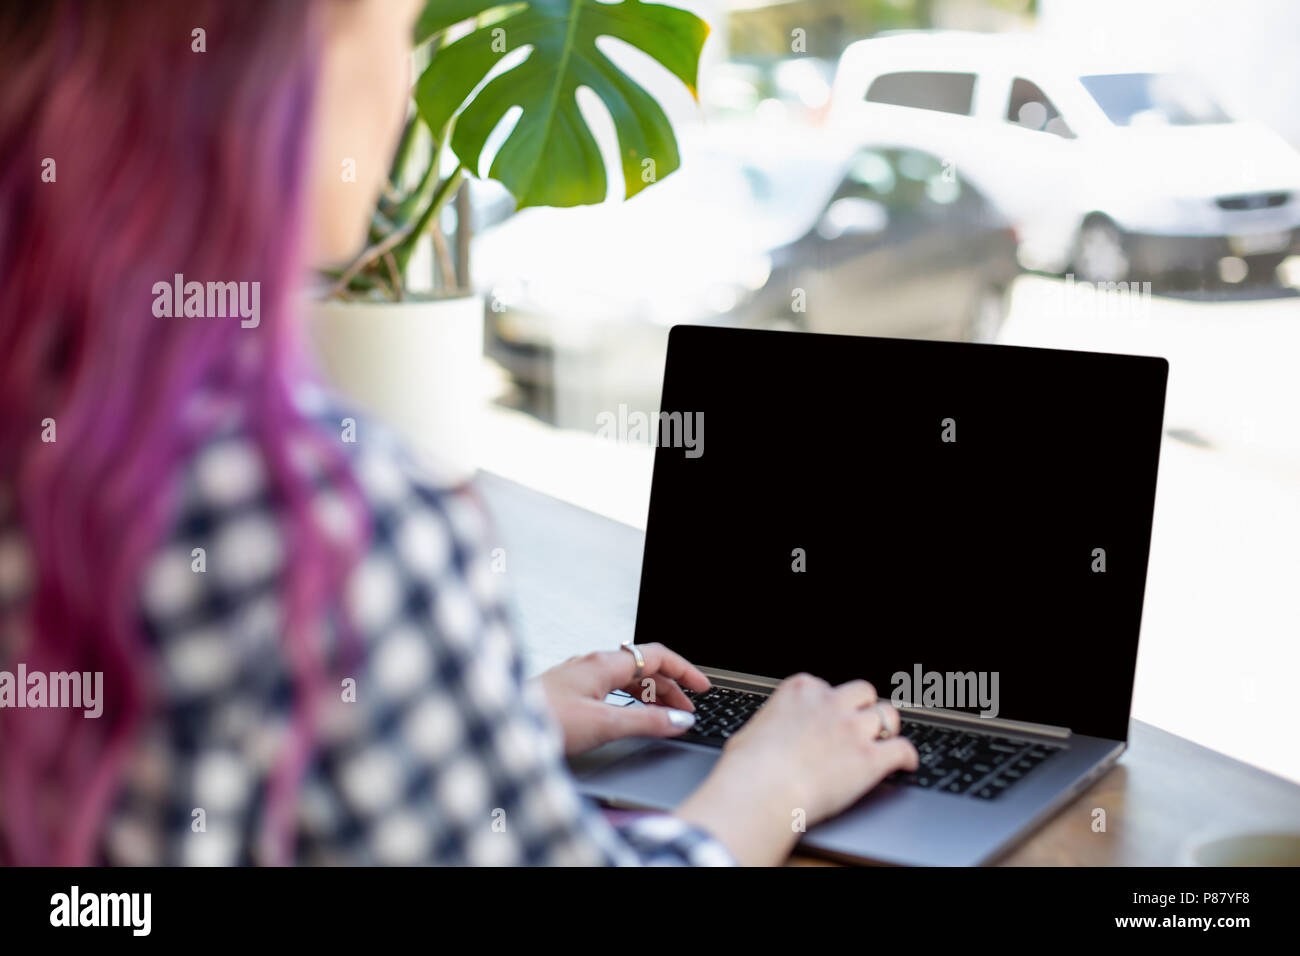 Back view of a young pink hair woman keyboarding on laptop computer with blank copy space screen while sitting in cafe. - Stock Image